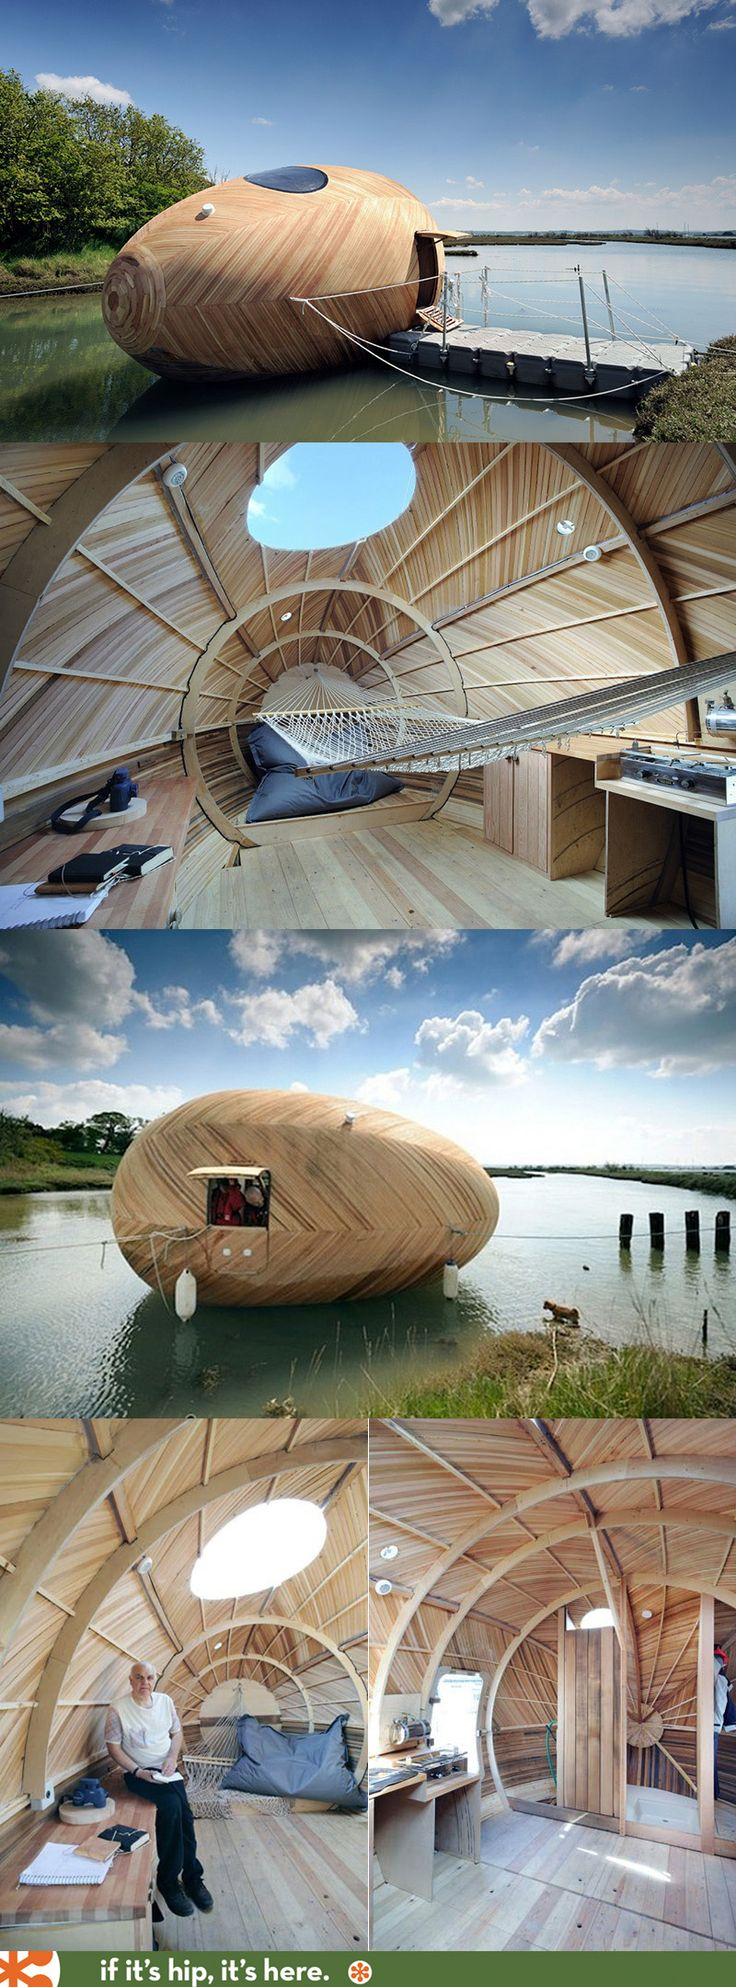 The Exbury Egg is a floating, wooden, sustainable, energy efficient pod that will serve as home to artist Stephen Turner for a year. [más información en casasprefabricadasya.com]